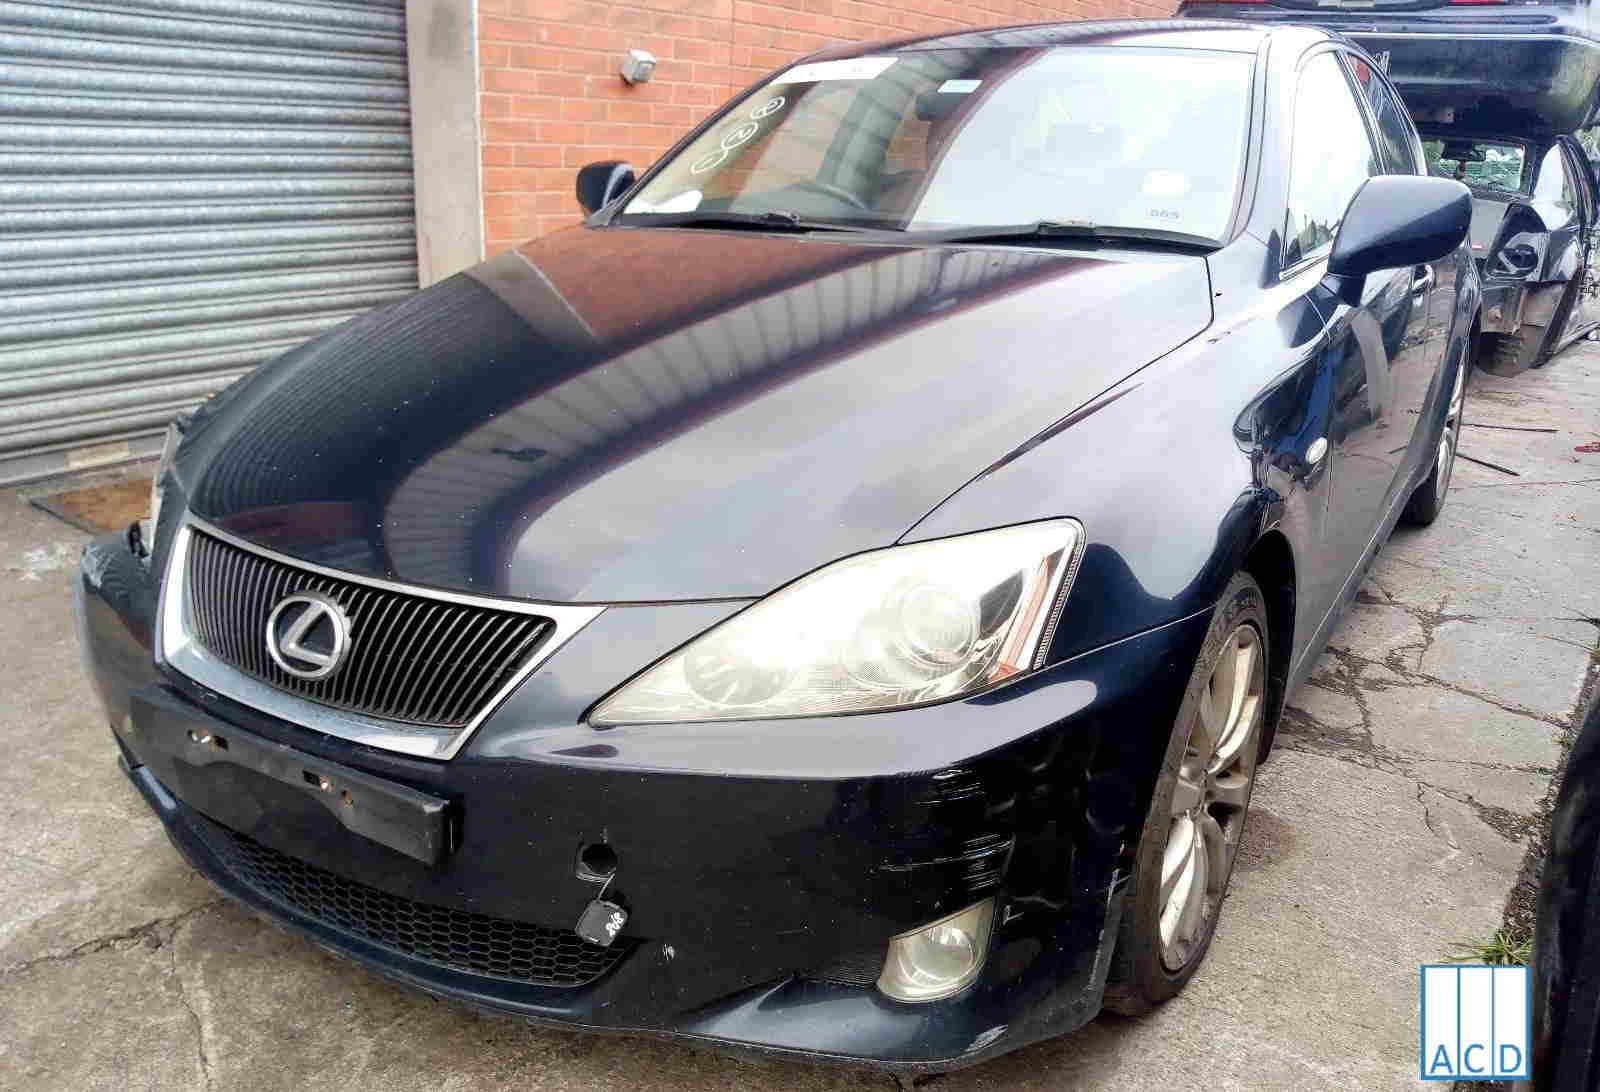 Lexus IS 250 SE 2.5L 6-Speed Automatic 2005 #3174 01